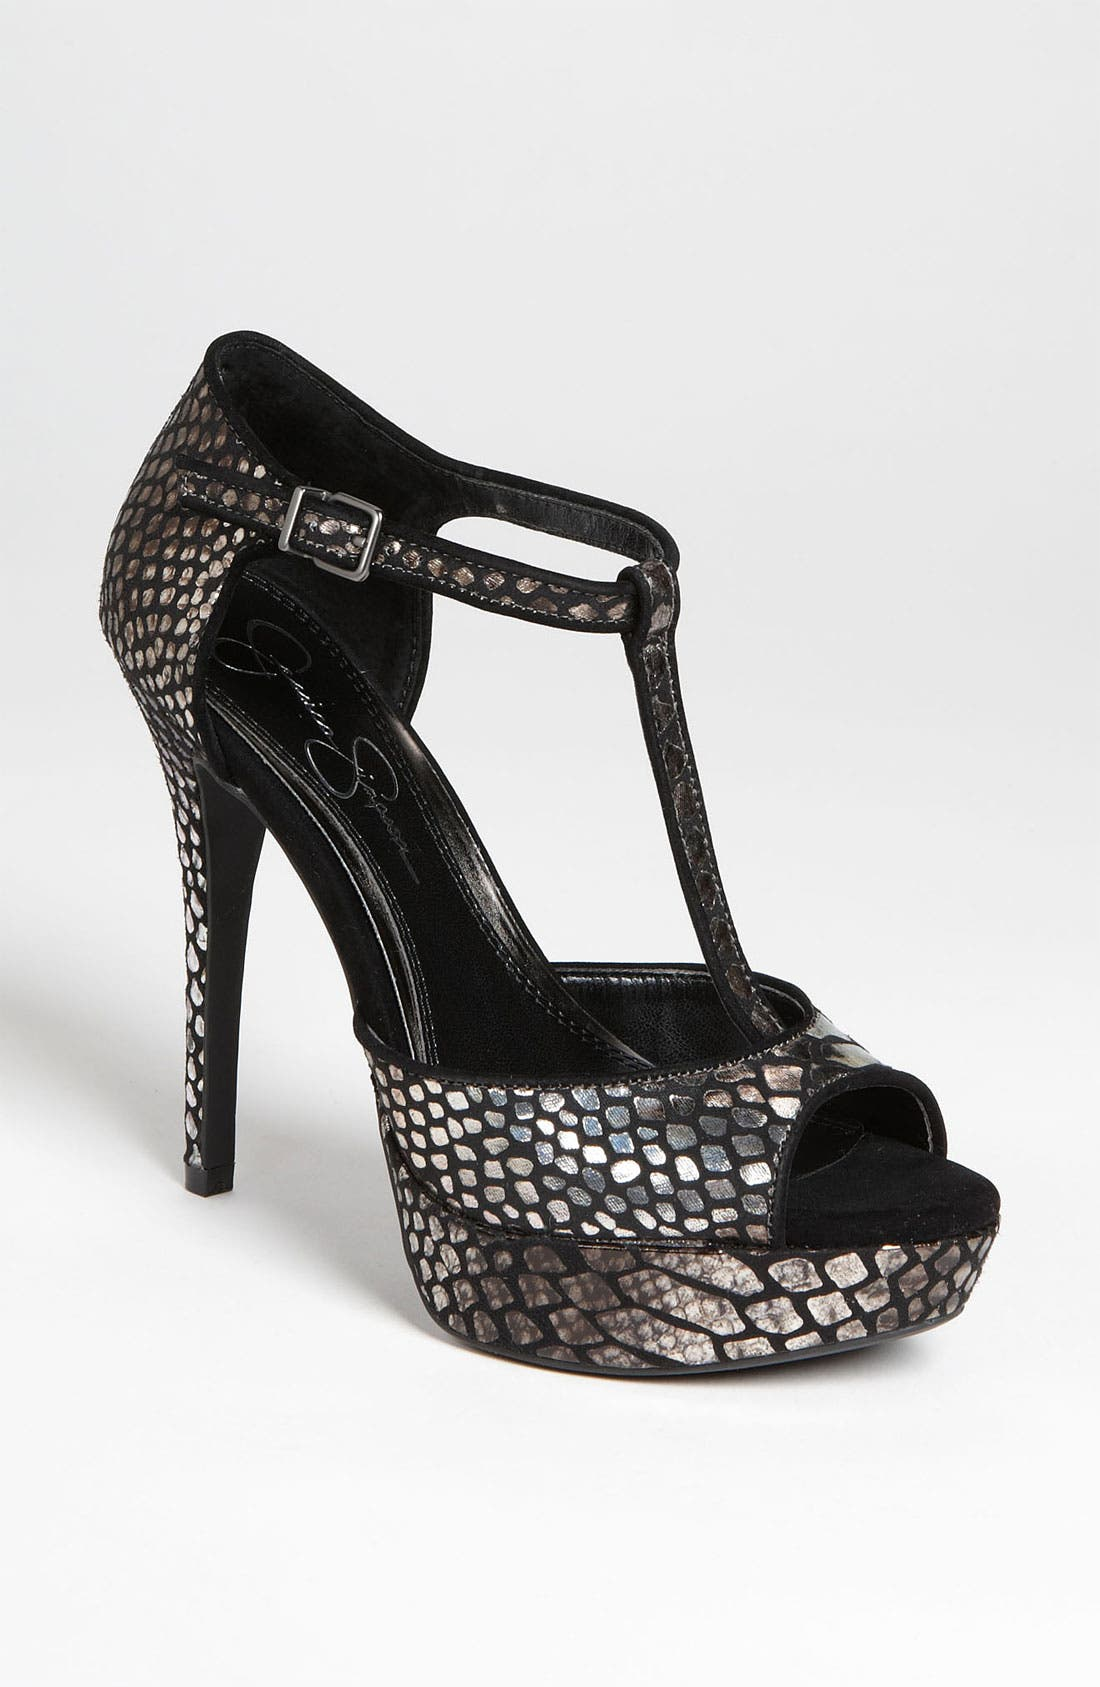 Alternate Image 1 Selected - Jessica Simpson 'Bansi' Sandal